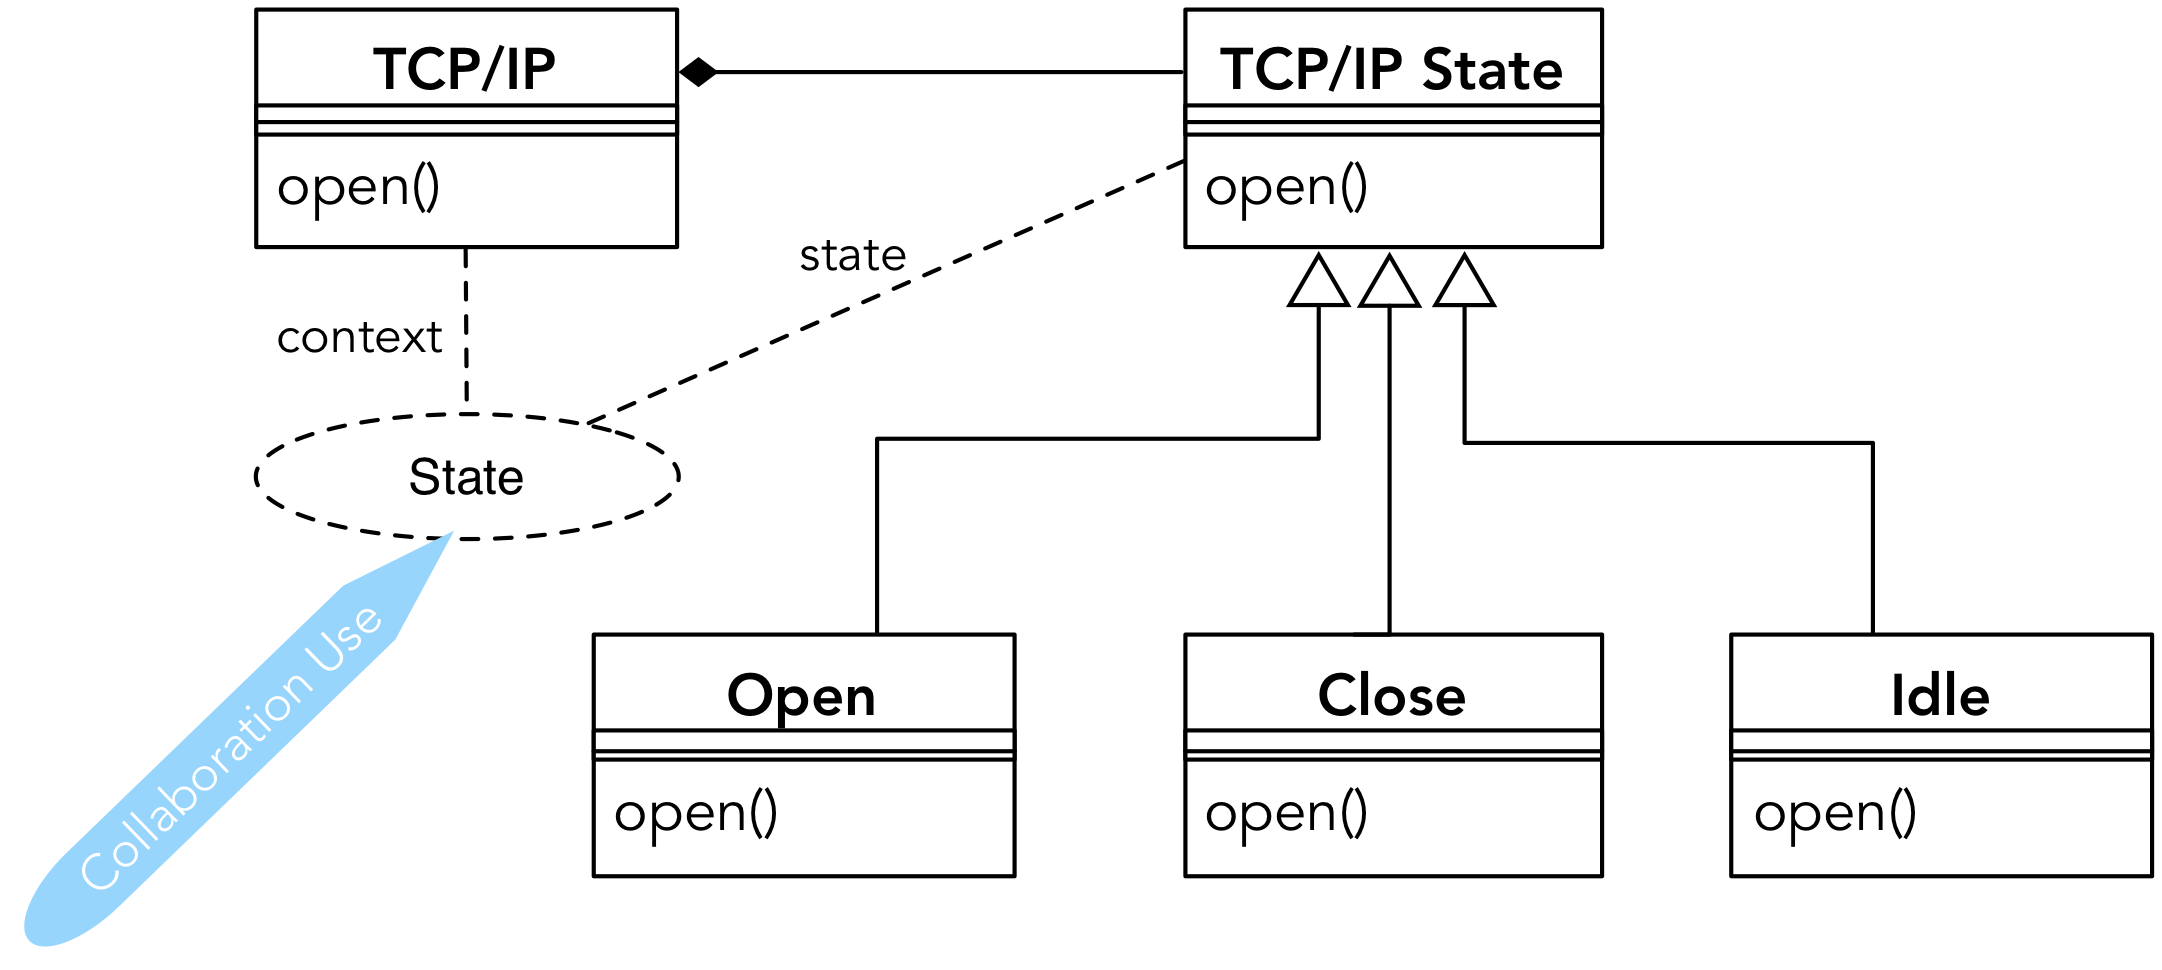 src/images/pattern-state-collaboration-use.png